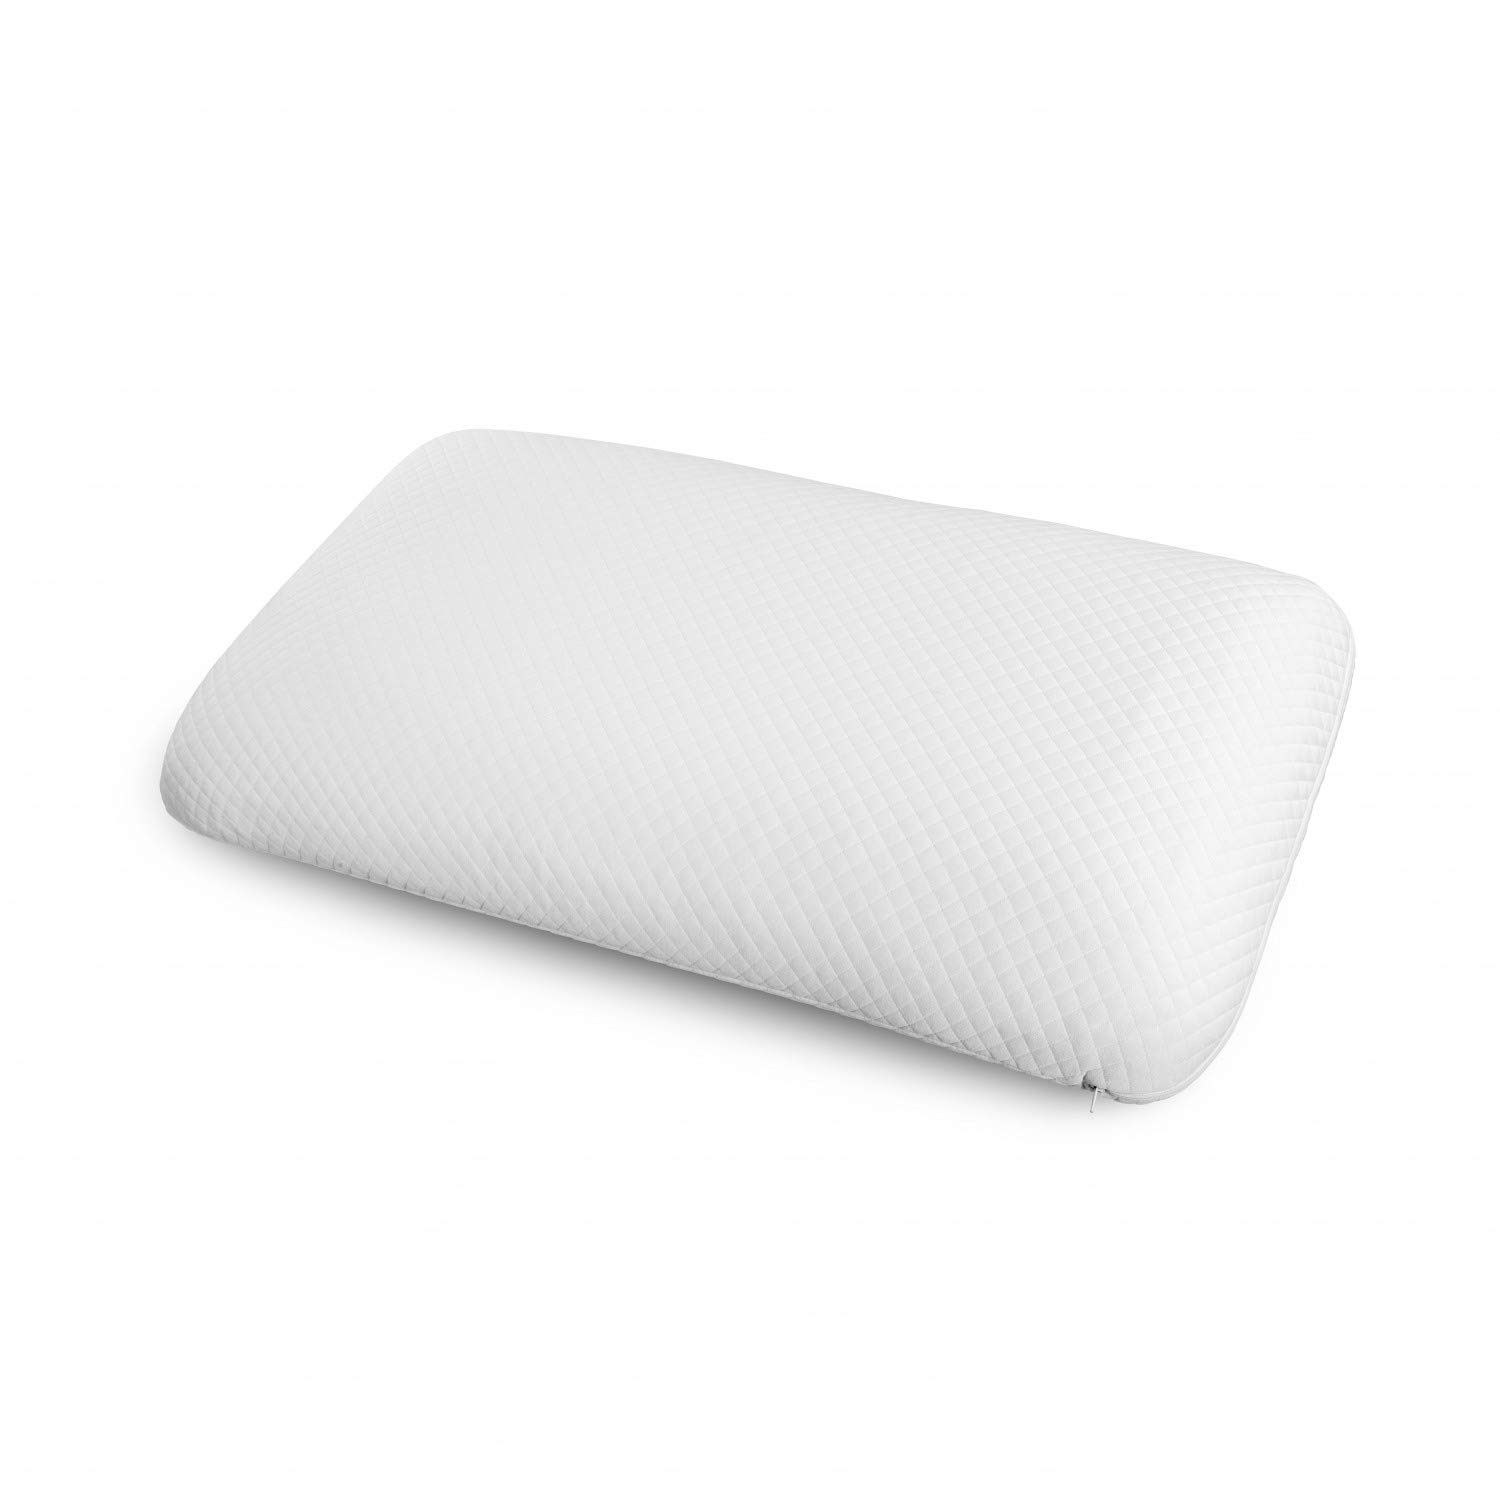 Ambesonne Shredded Memory Foam Pillow and Cover, Non Reclaimed Comfortable Padding Orthopedic and Healthy Hotel Quality Comfortable Easy to Clean Decorative Pillowcase, 30'' X 20'' X 5.5, White